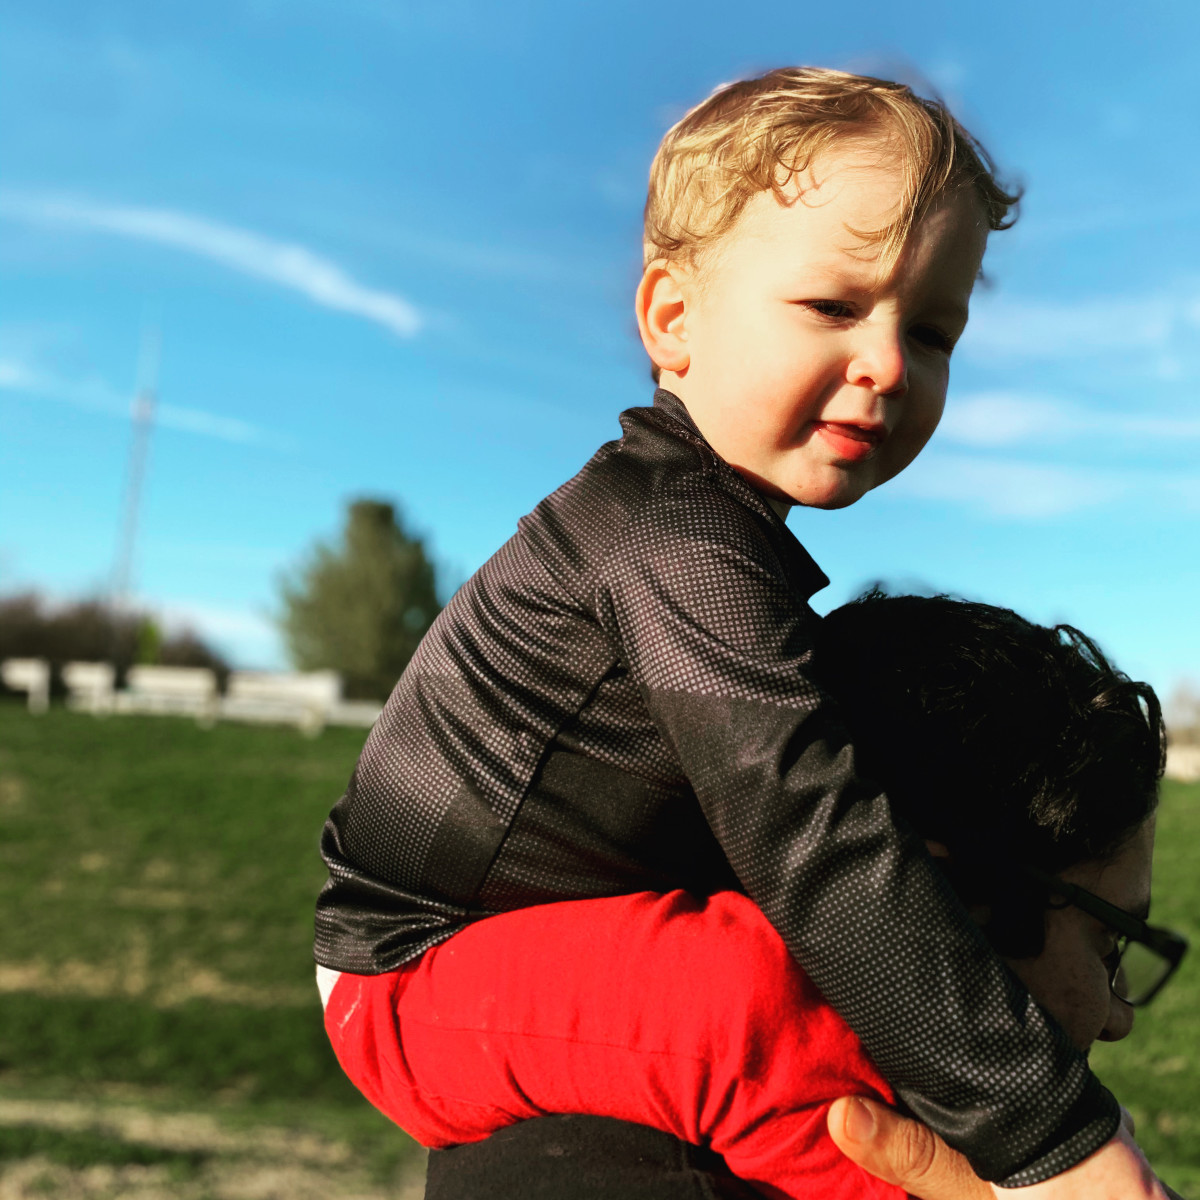 Grayson riding on daddy's shoulders during our walk around the neighborhood.